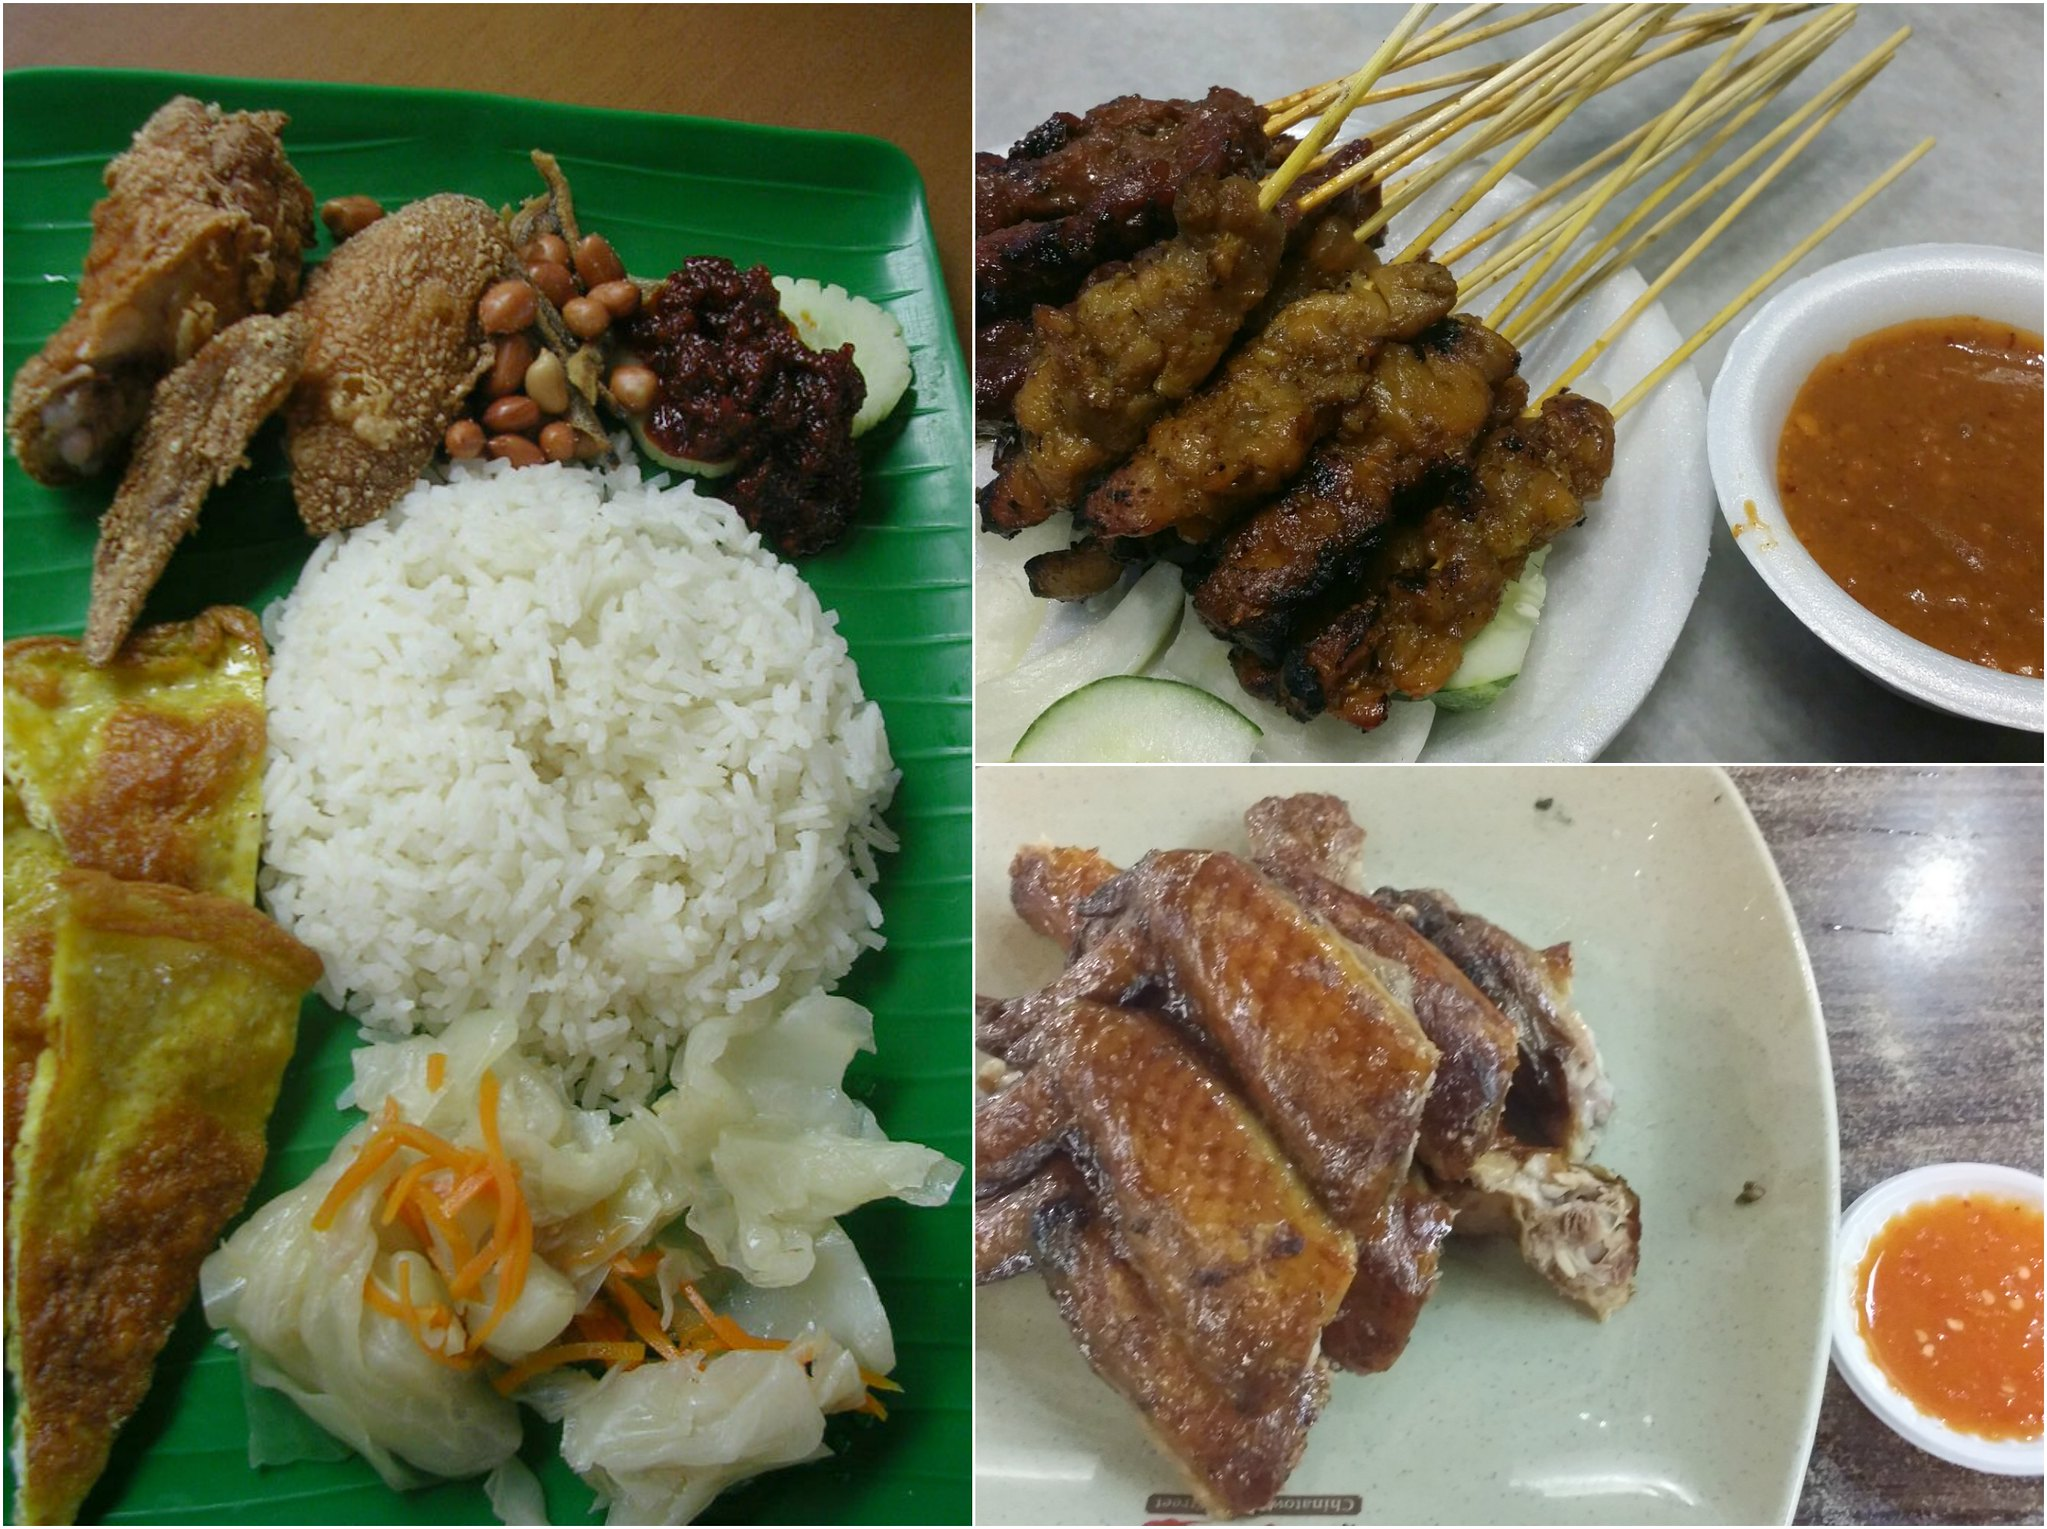 Singapore Food - Nasi Lemak, Satay, Chicken Wings